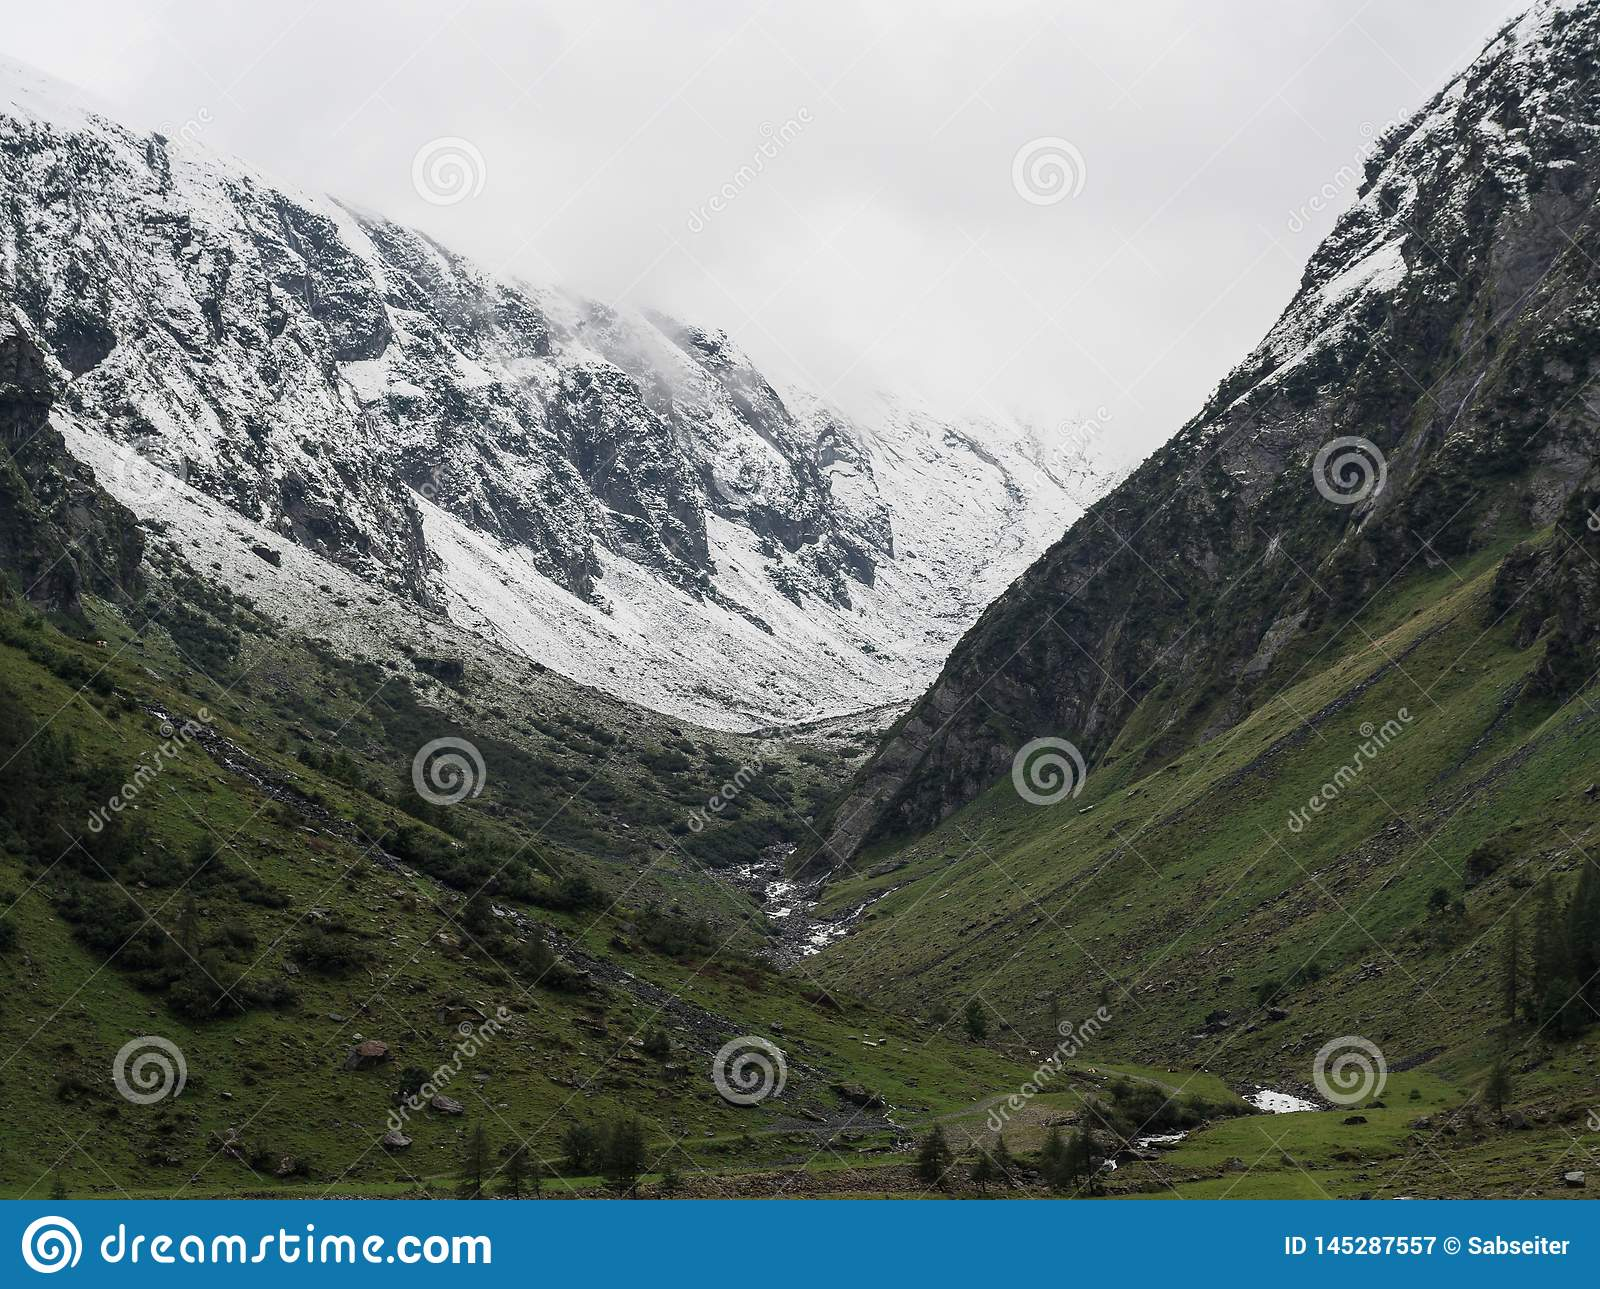 Snow capped mountains valley view